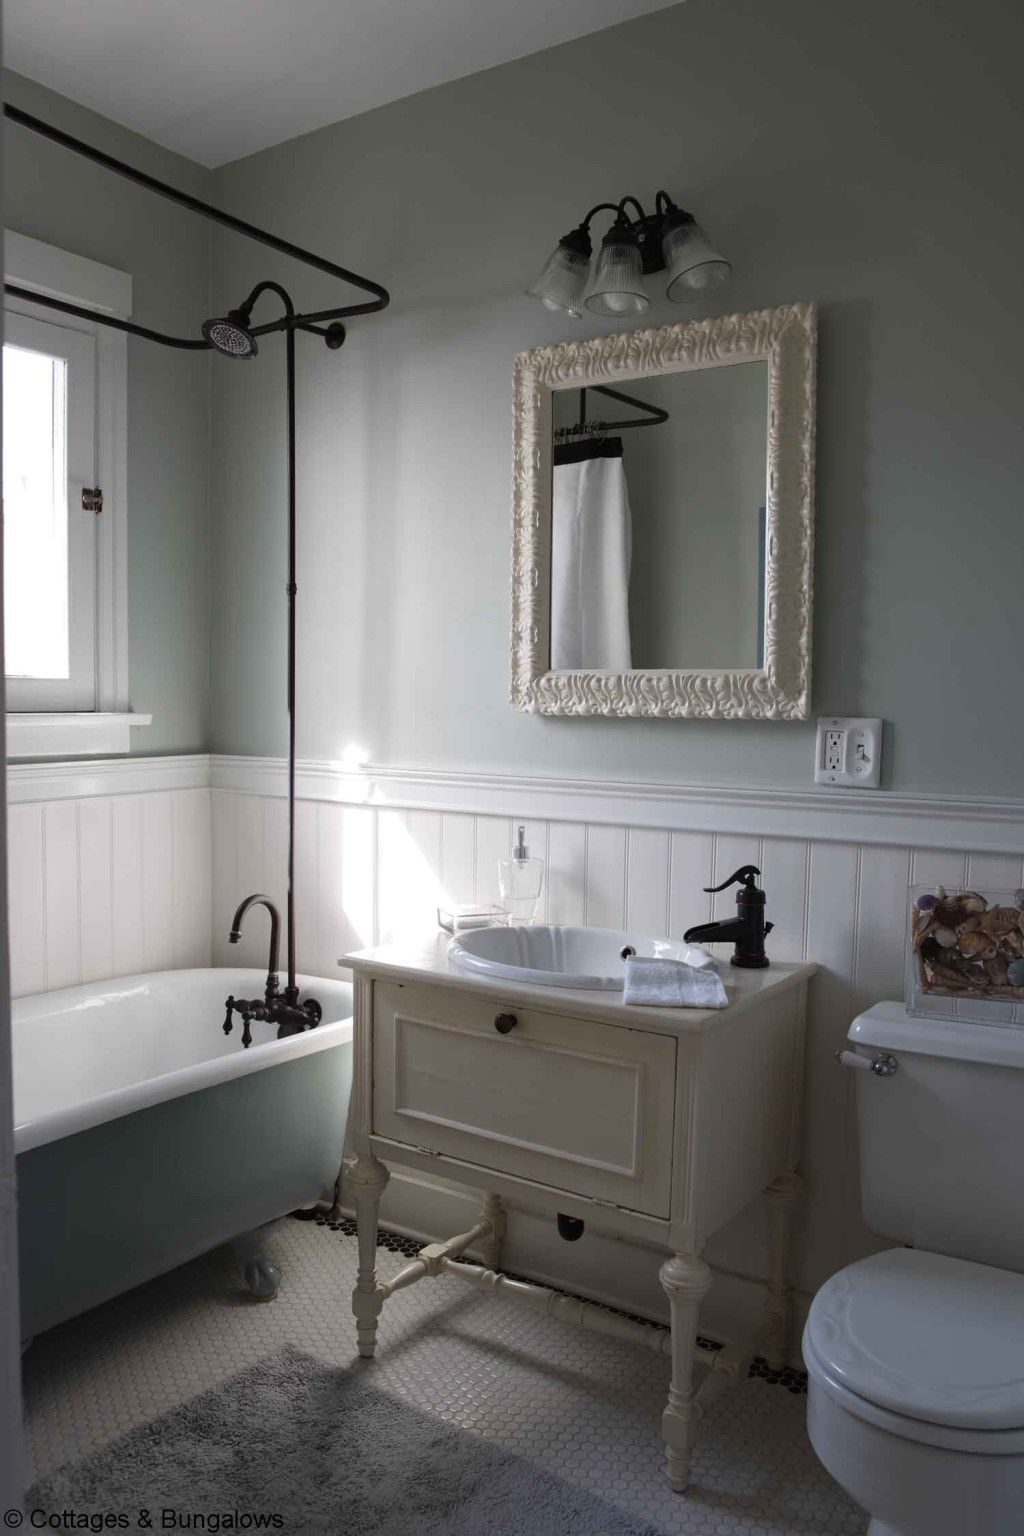 Wonderful Half Vintage Bathroom With Old White Single Wonderful Half Vintage Bathroom With Old White Single Sink Vanities